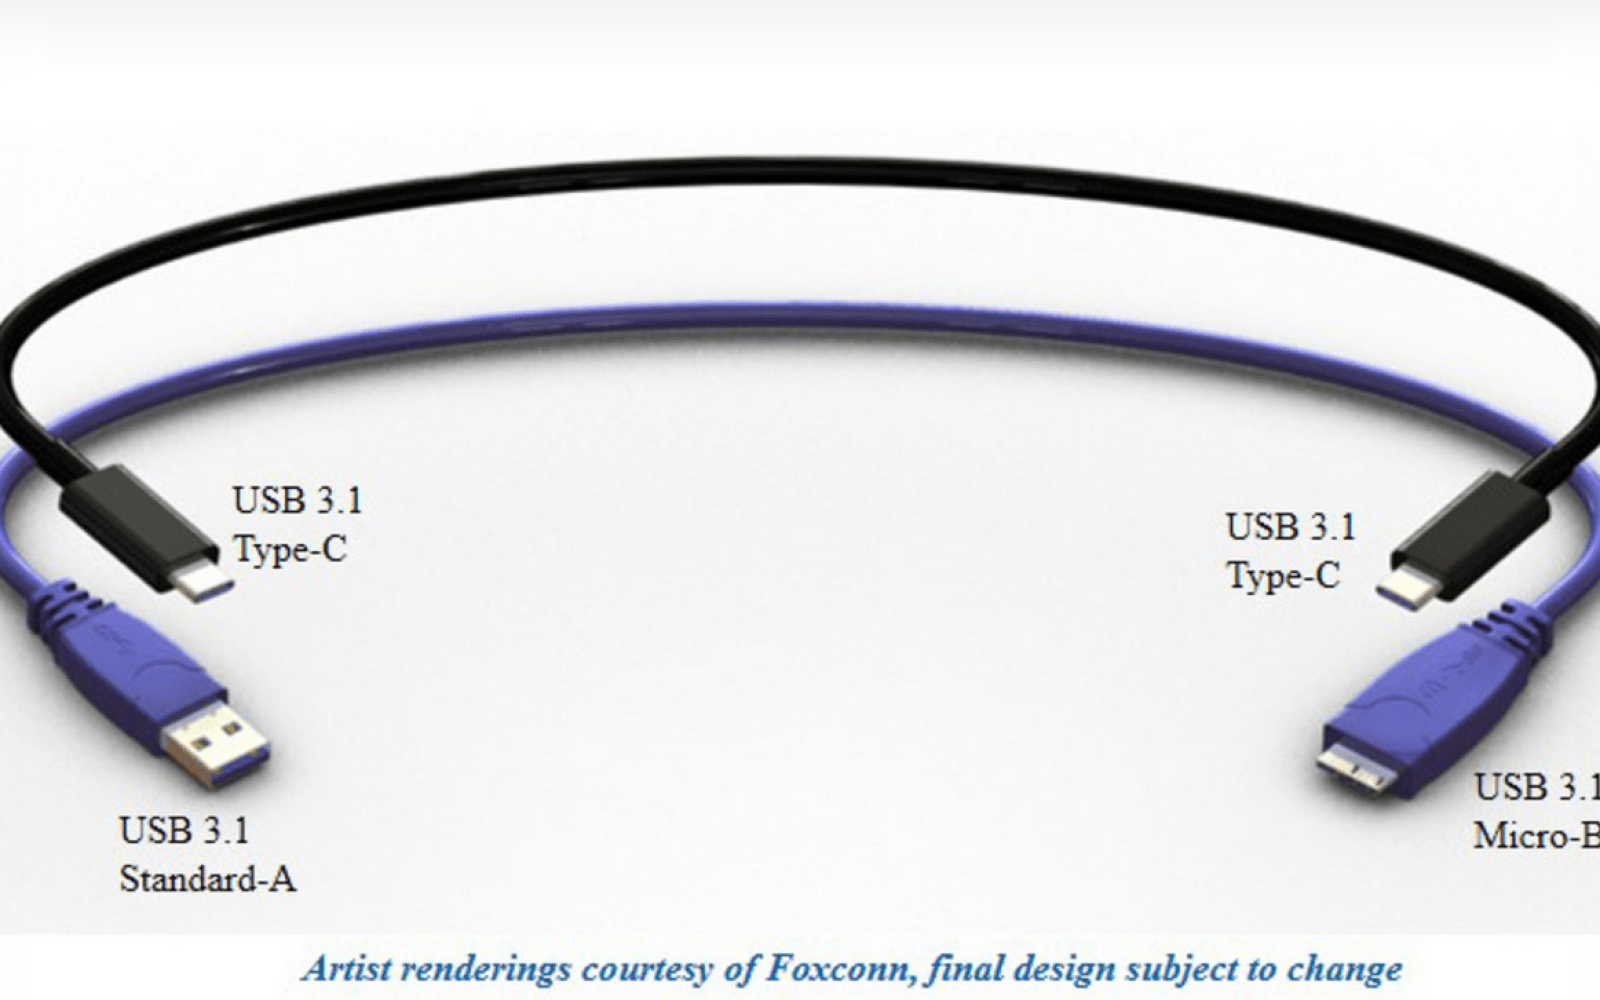 Render gives first look at next-gen reversible USB Type-C cable coming in July